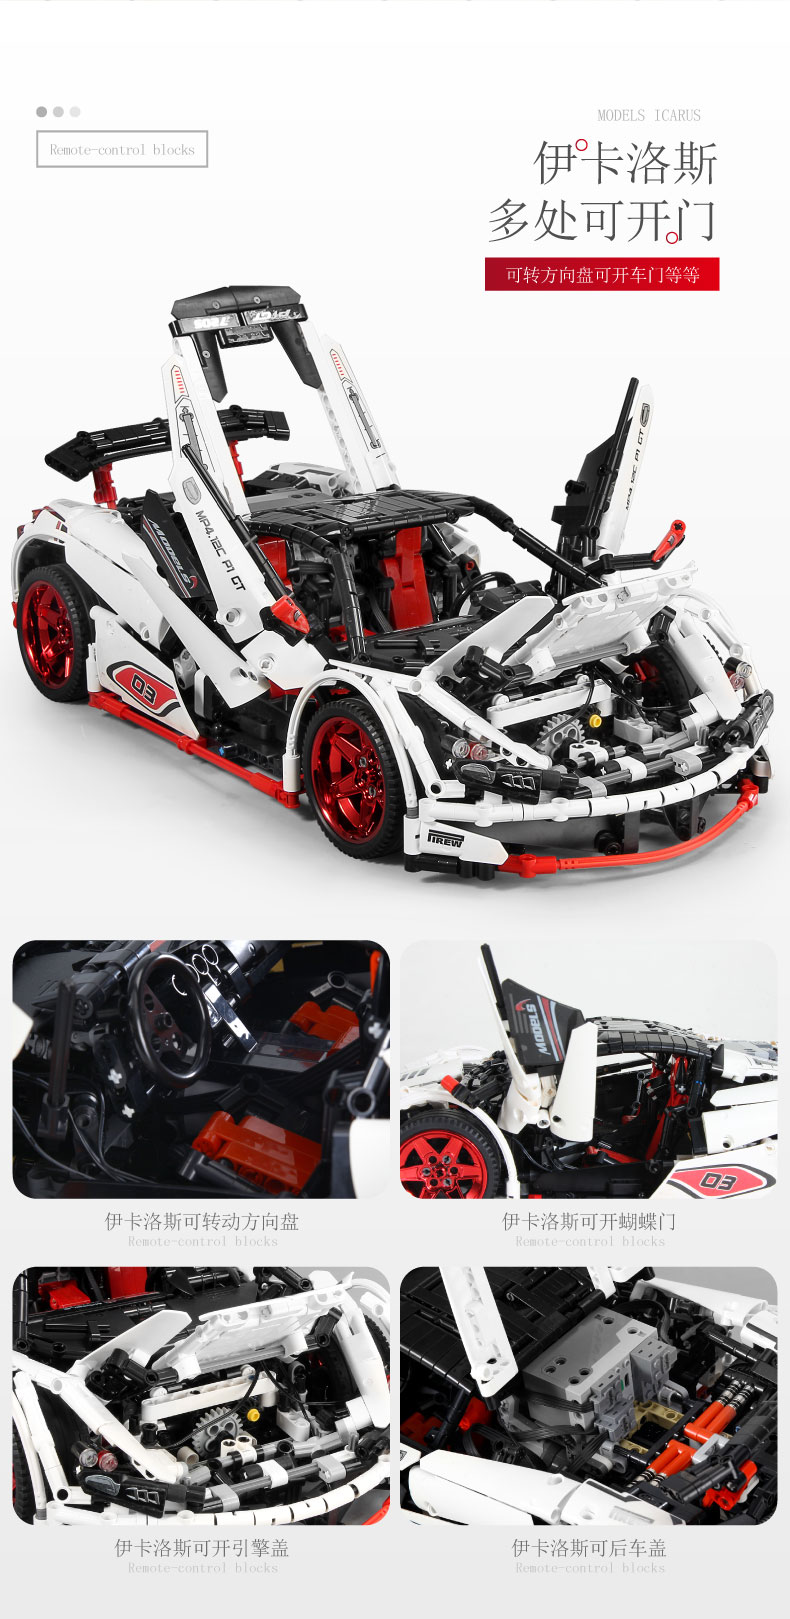 MOULD KING 13067 Technic MOC  P1 Super Hypercar Roadsters Building Block  (1928pcs) 5